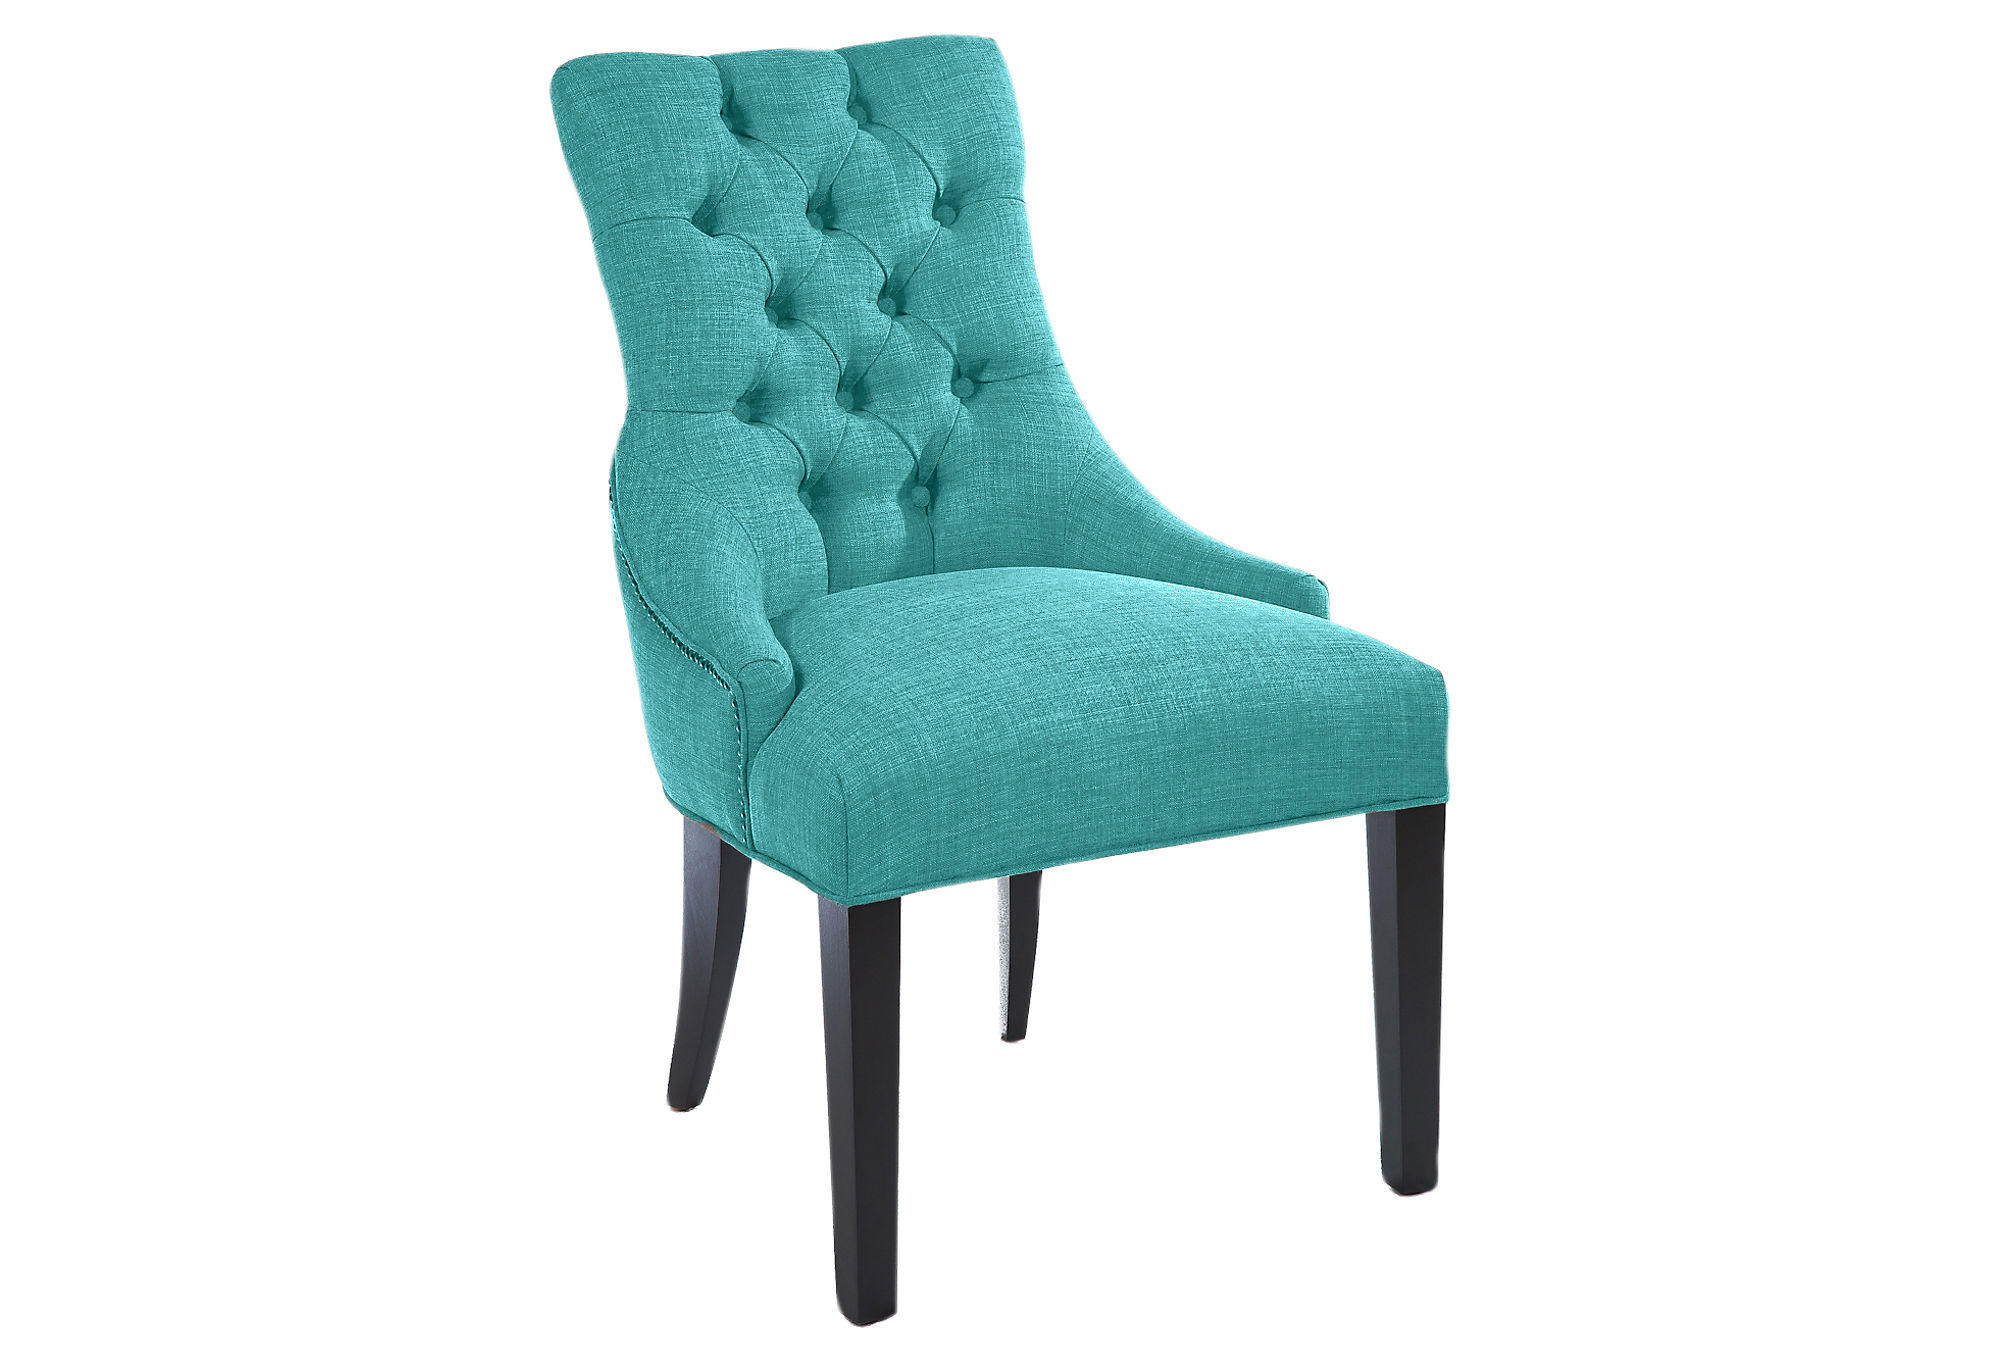 Briana Tufted Chair Teal Accent From One Kings Lane